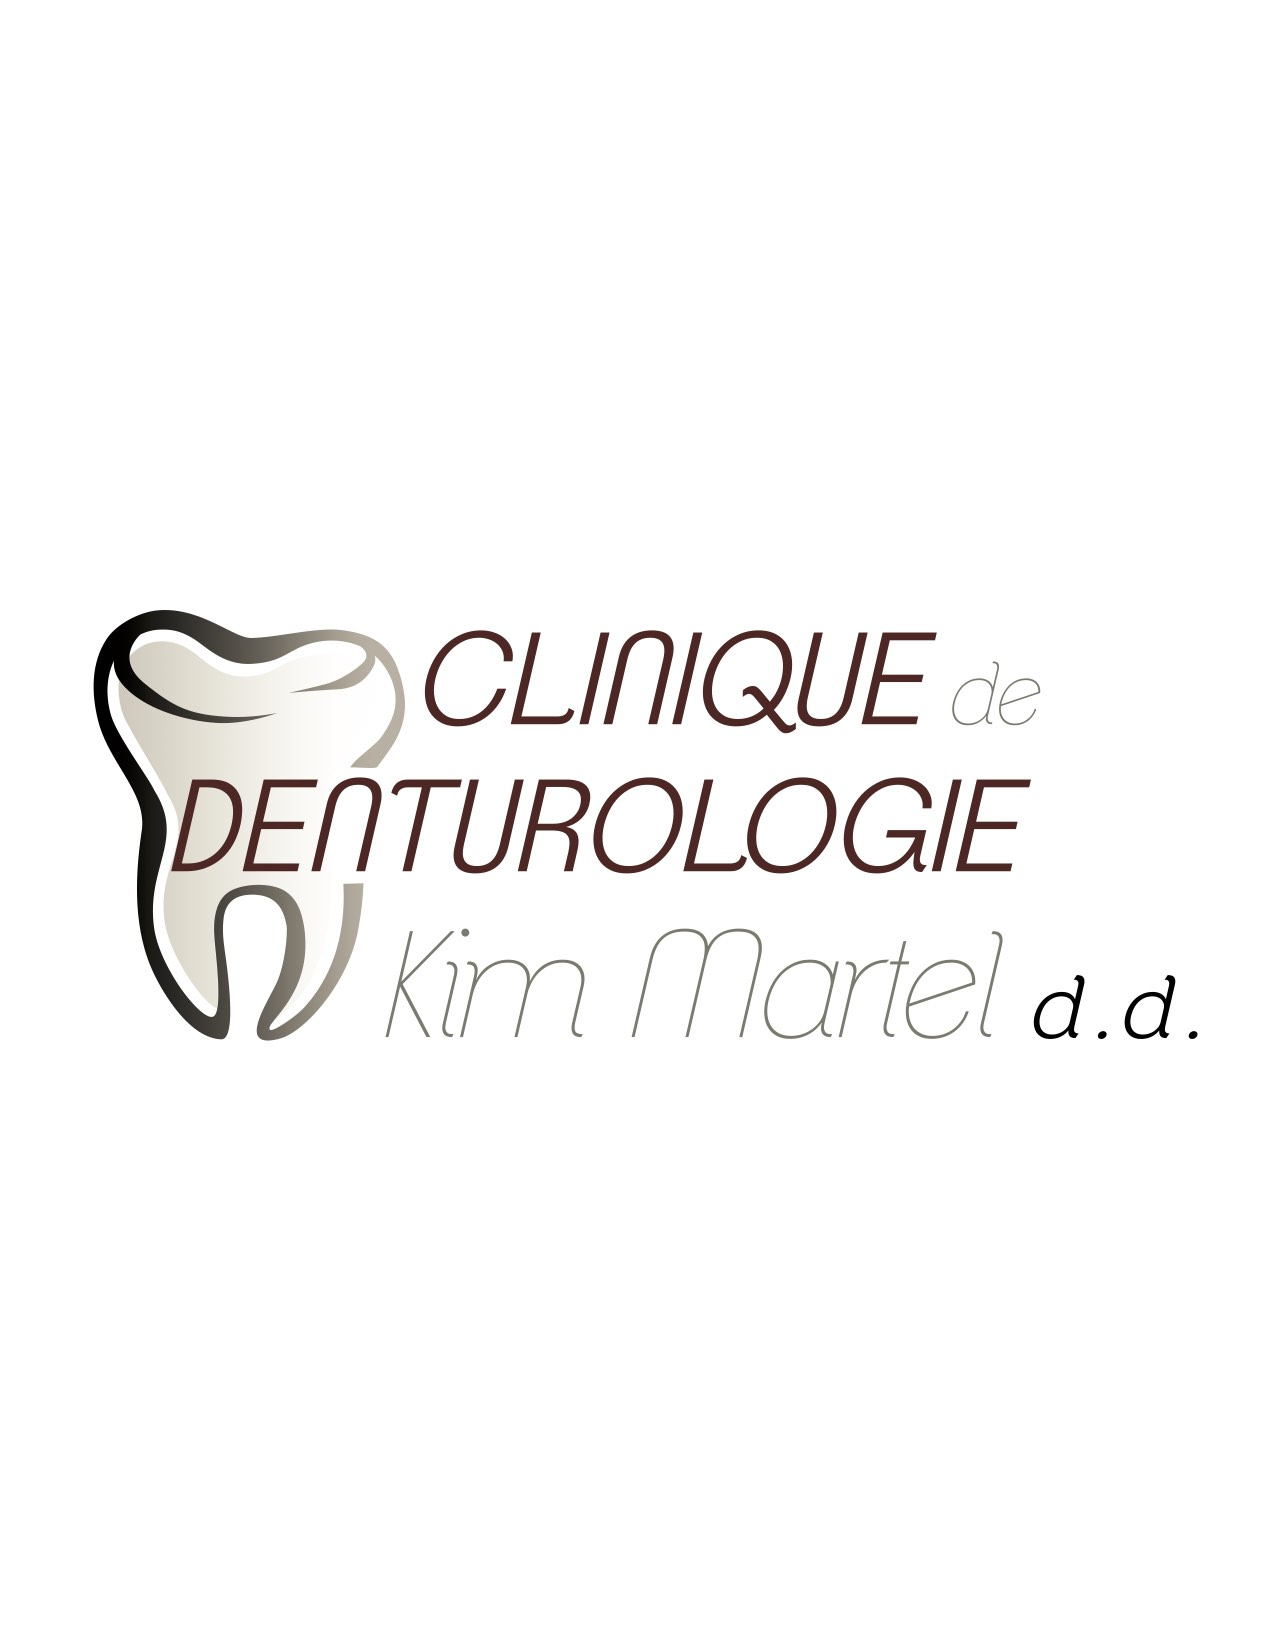 Clinique de Denturologie Kim Martel